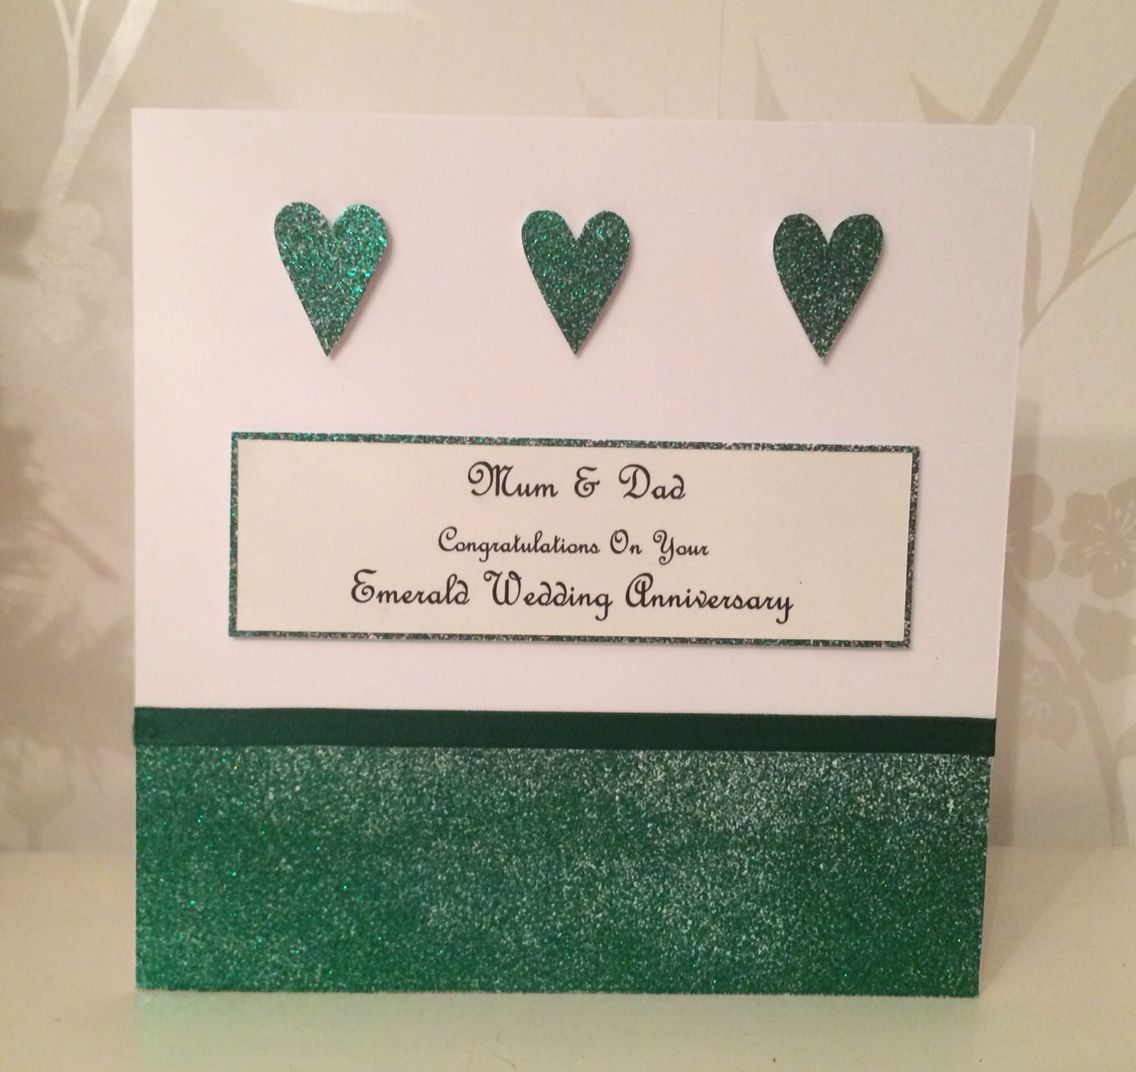 wedding anniversary card pictures%0A Handmade personalised emerald wedding anniversary card